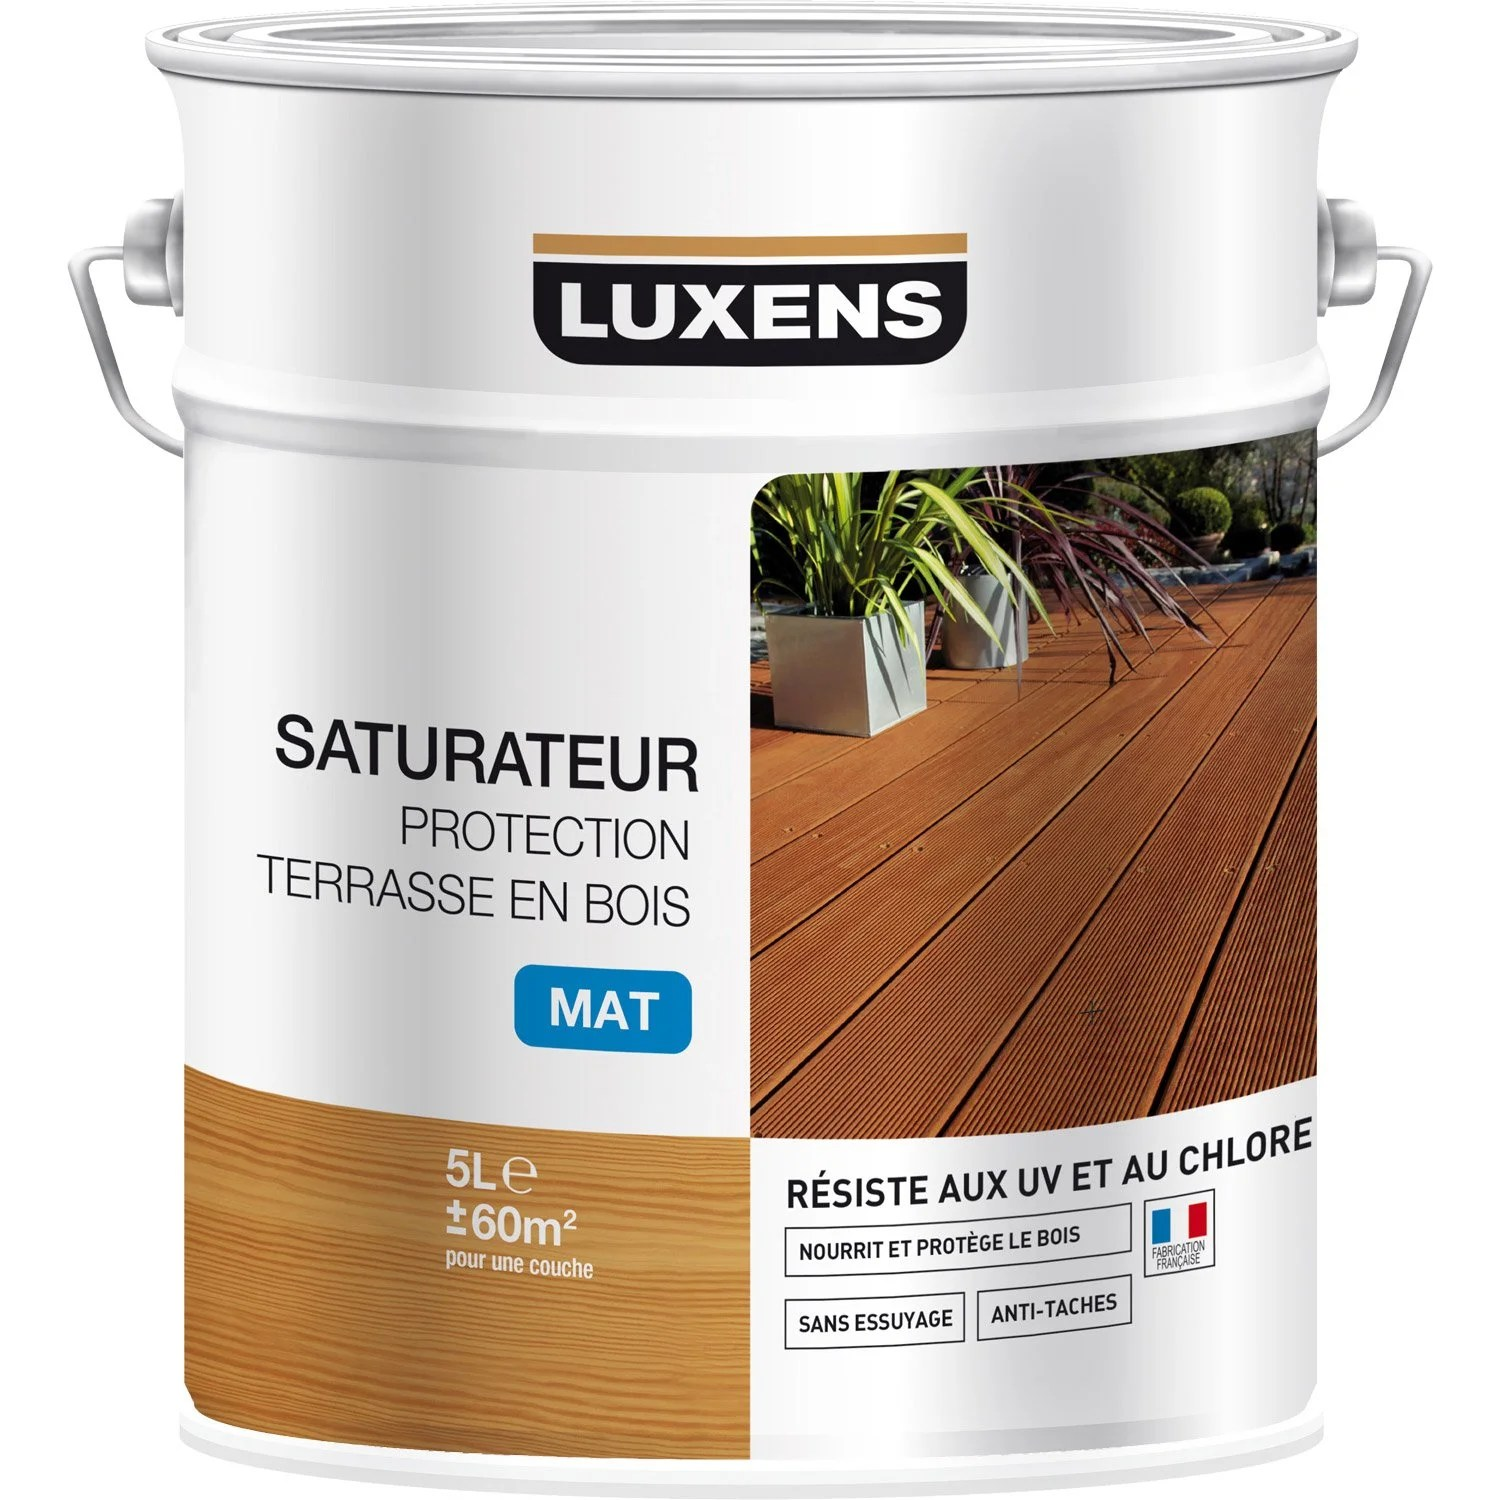 Dalle Terrasse Temps De Sechage Saturateur Luxens Protection Terrasse Bois 5 L Naturel